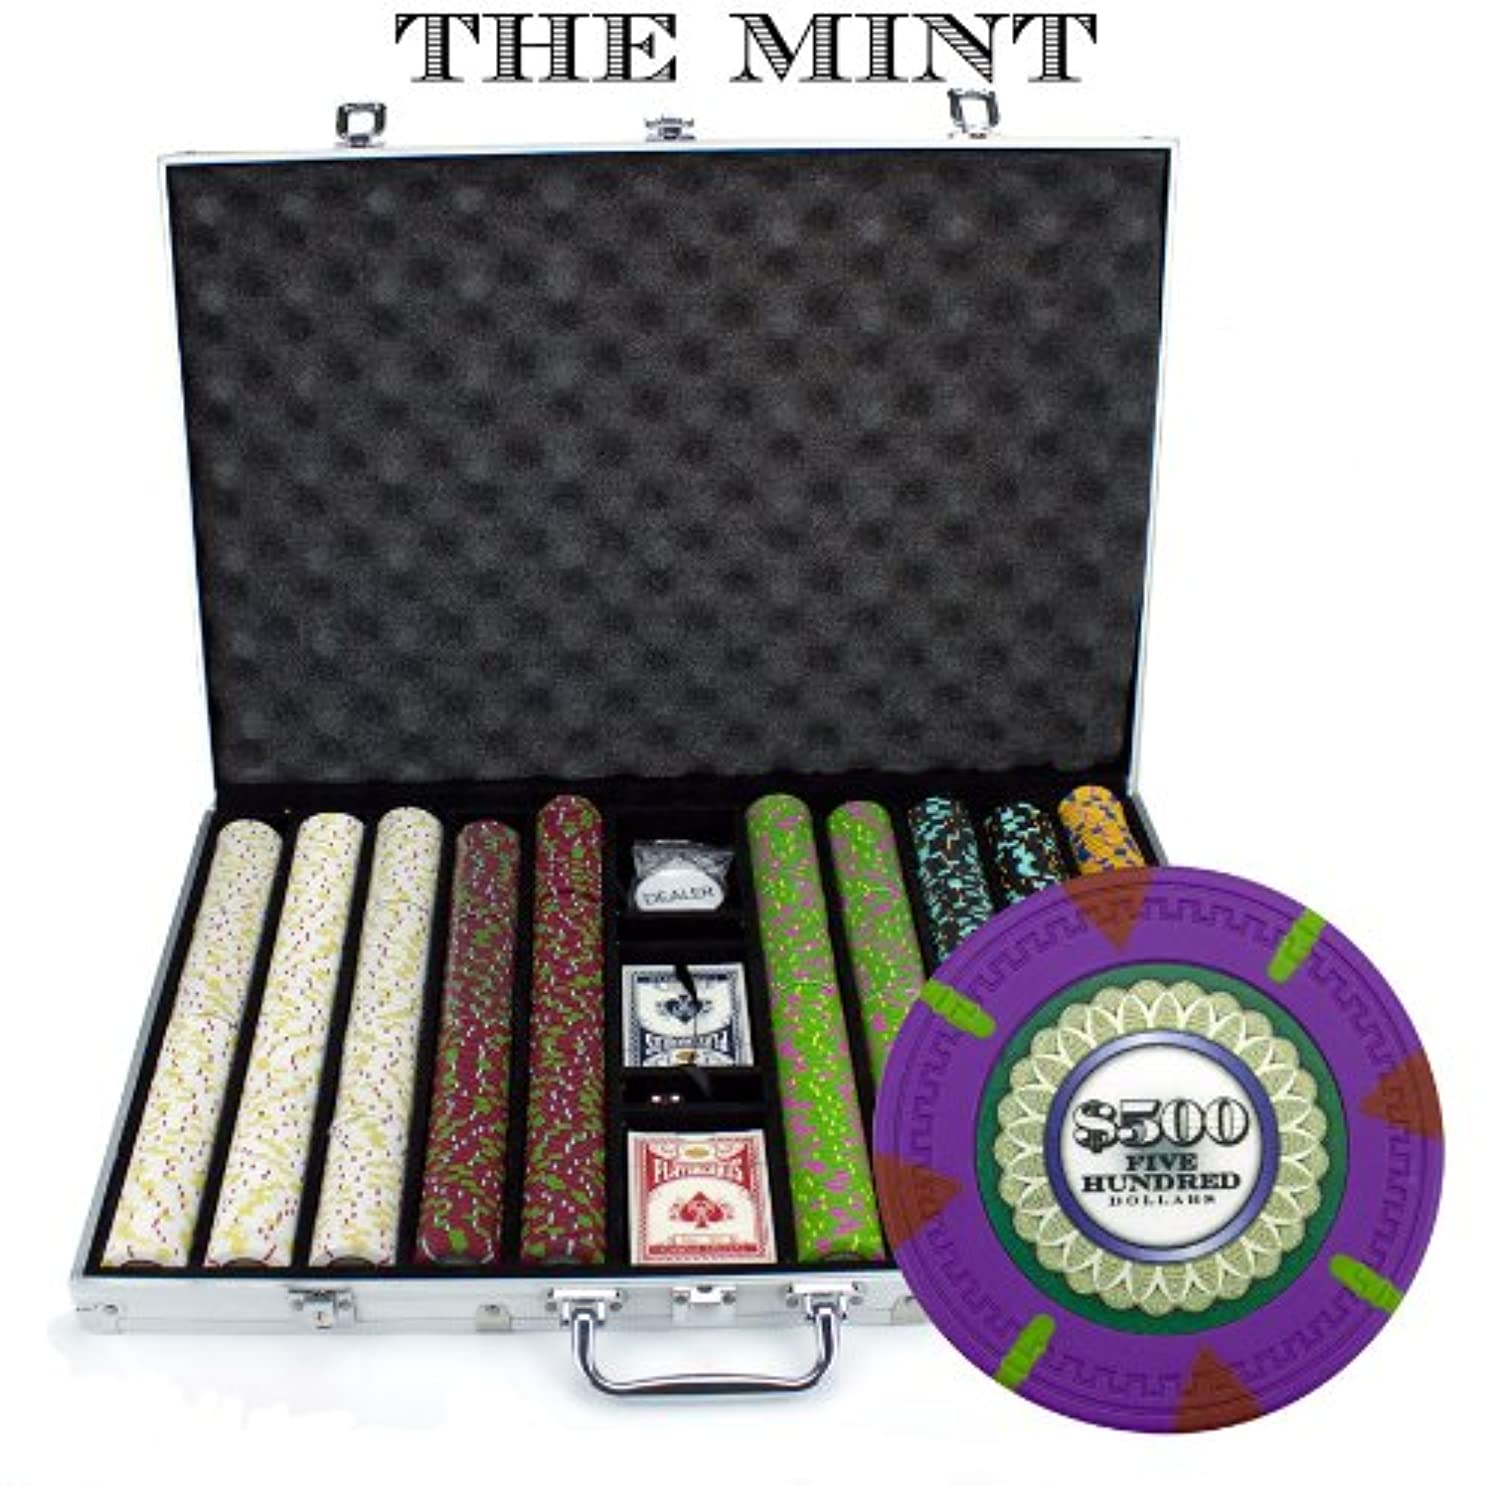 Claysmith Gaming 1,000 Ct The Mint Poker Set - 13g Clay Composite Chips with Aluminum Case, Playing Cards, Dealer Button